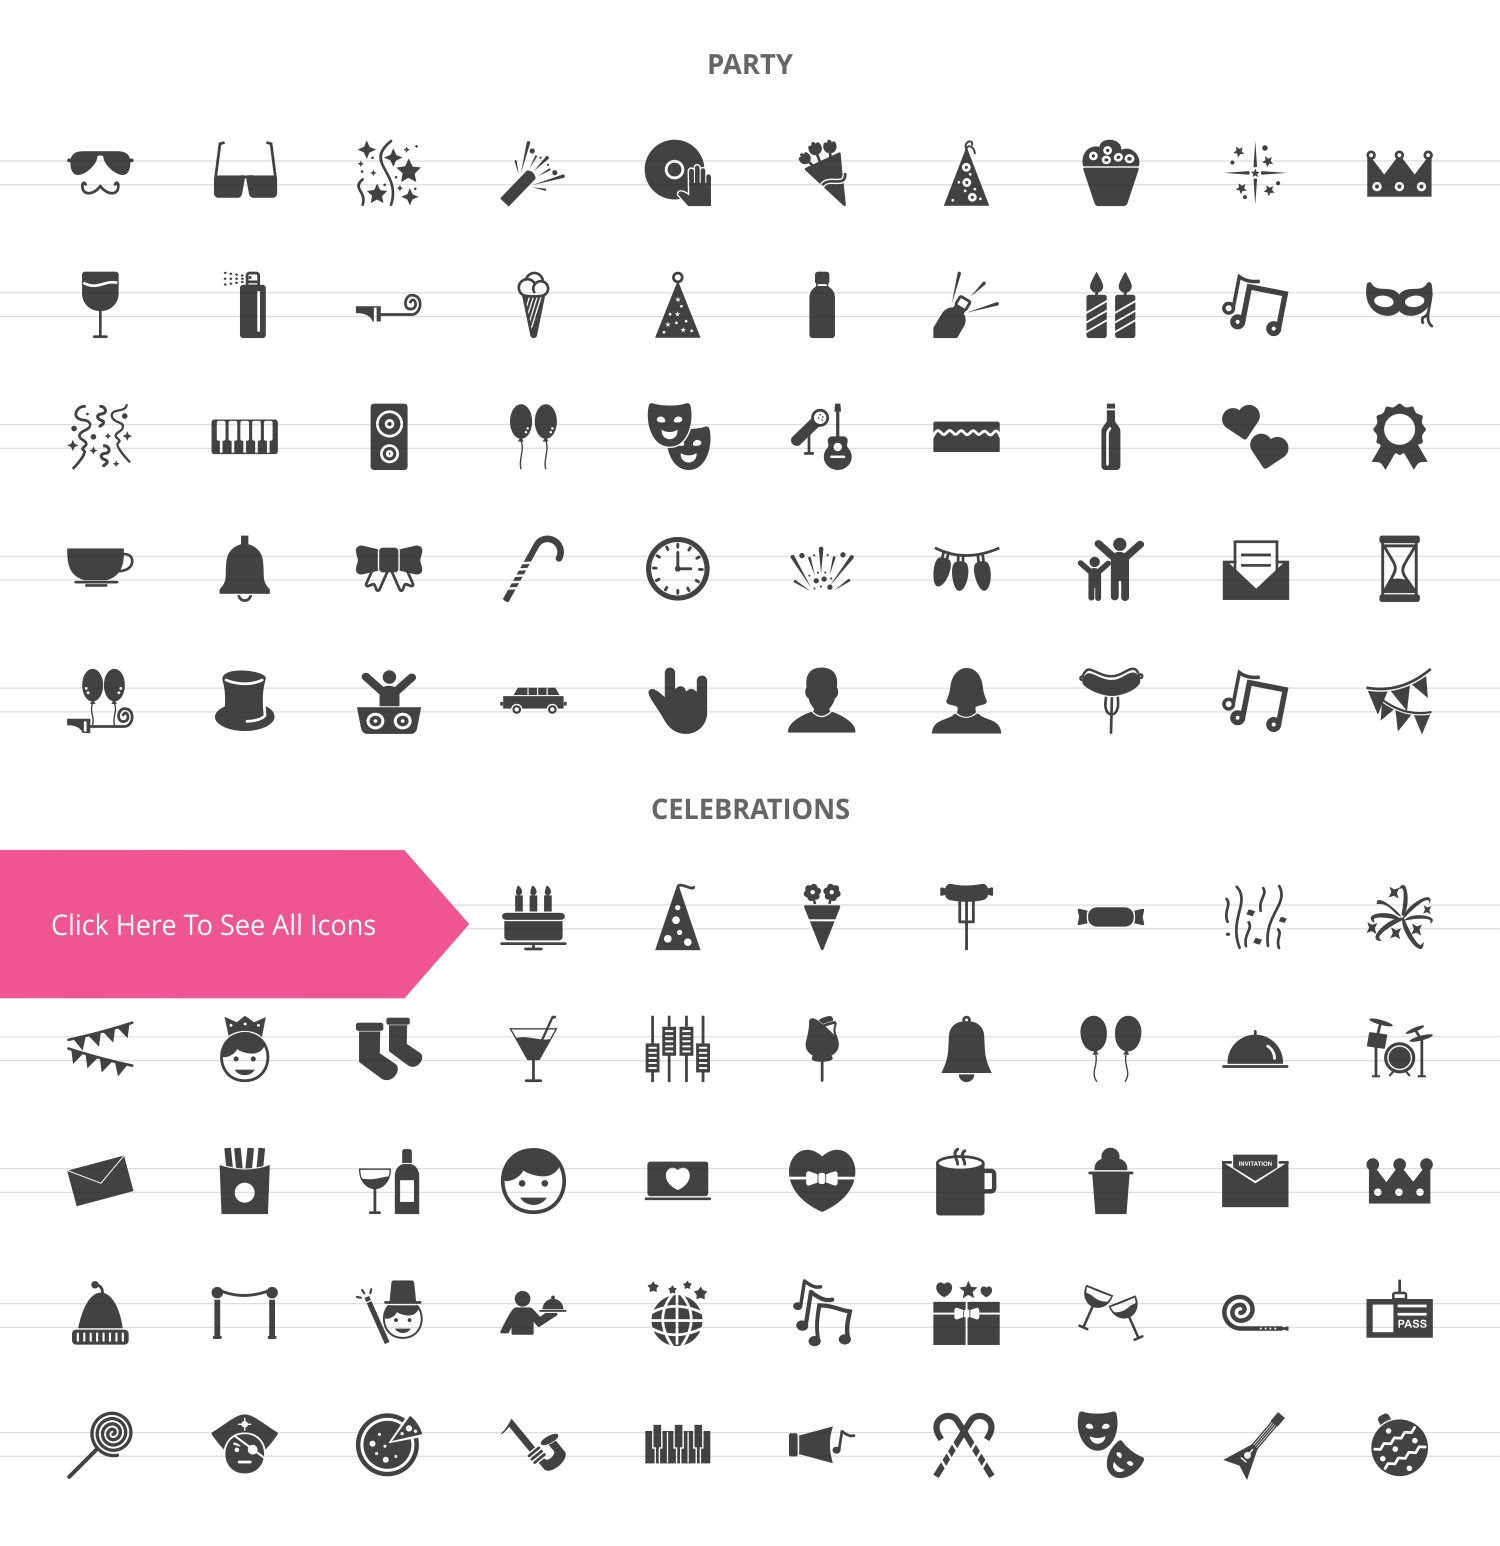 100 Party Glyph Icons example image 2